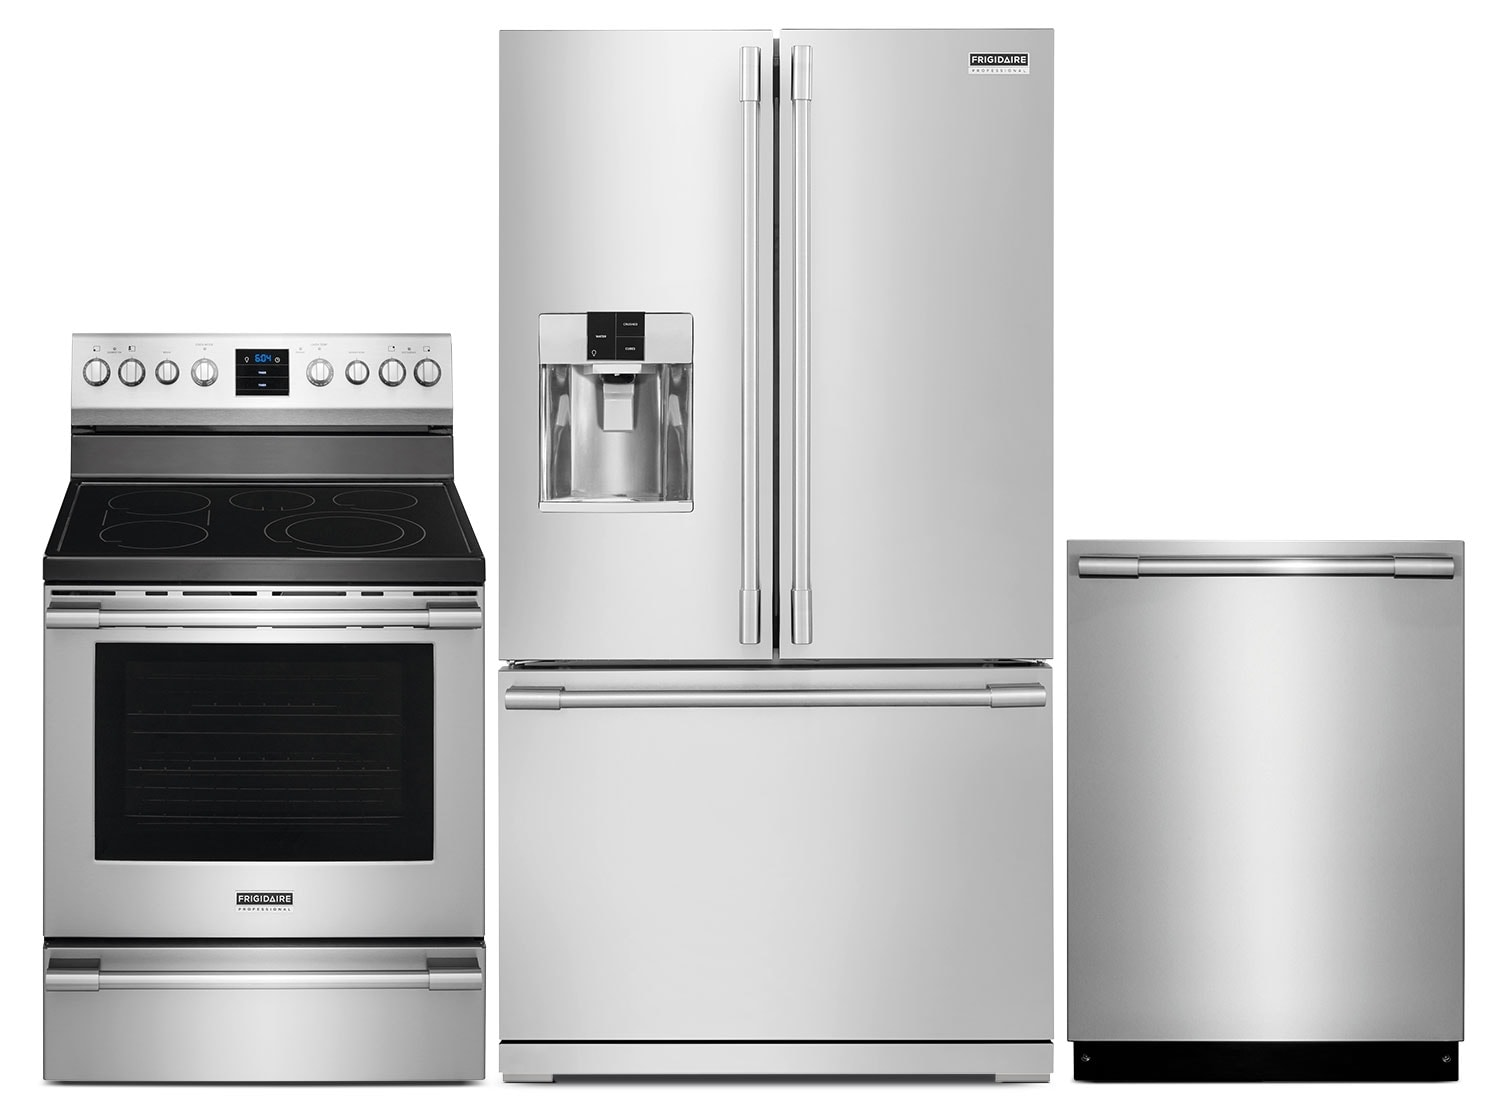 Cooking Products - Frigidaire 27.8 Cu. Ft. Refrigerator, Convection Range and Dishwasher